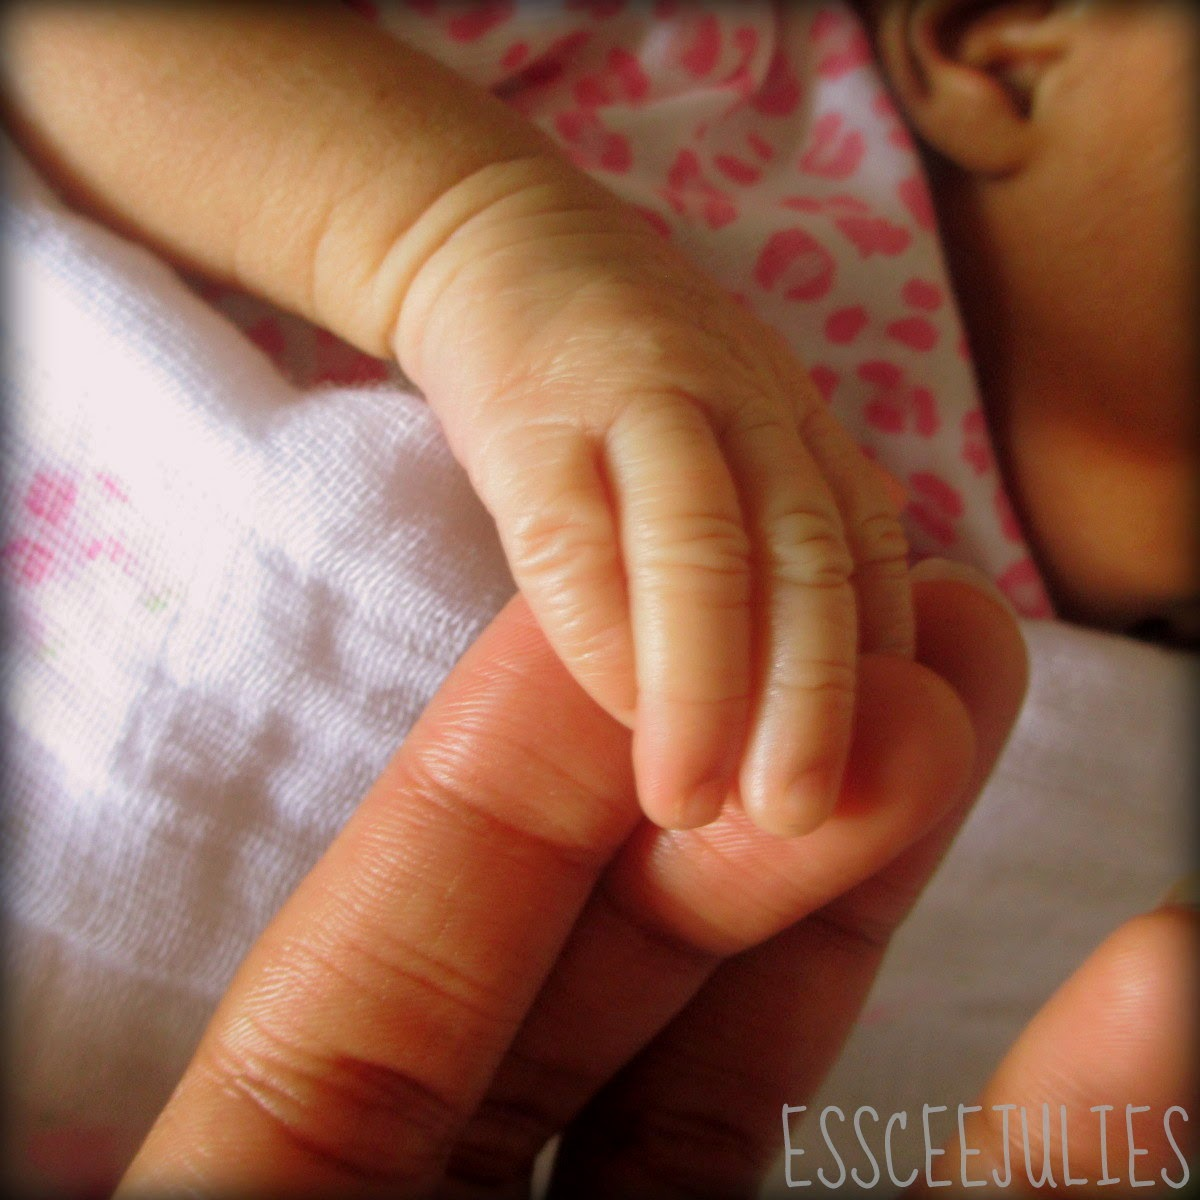 a-newborn-baby-hand-clasped-around-adult-fingers